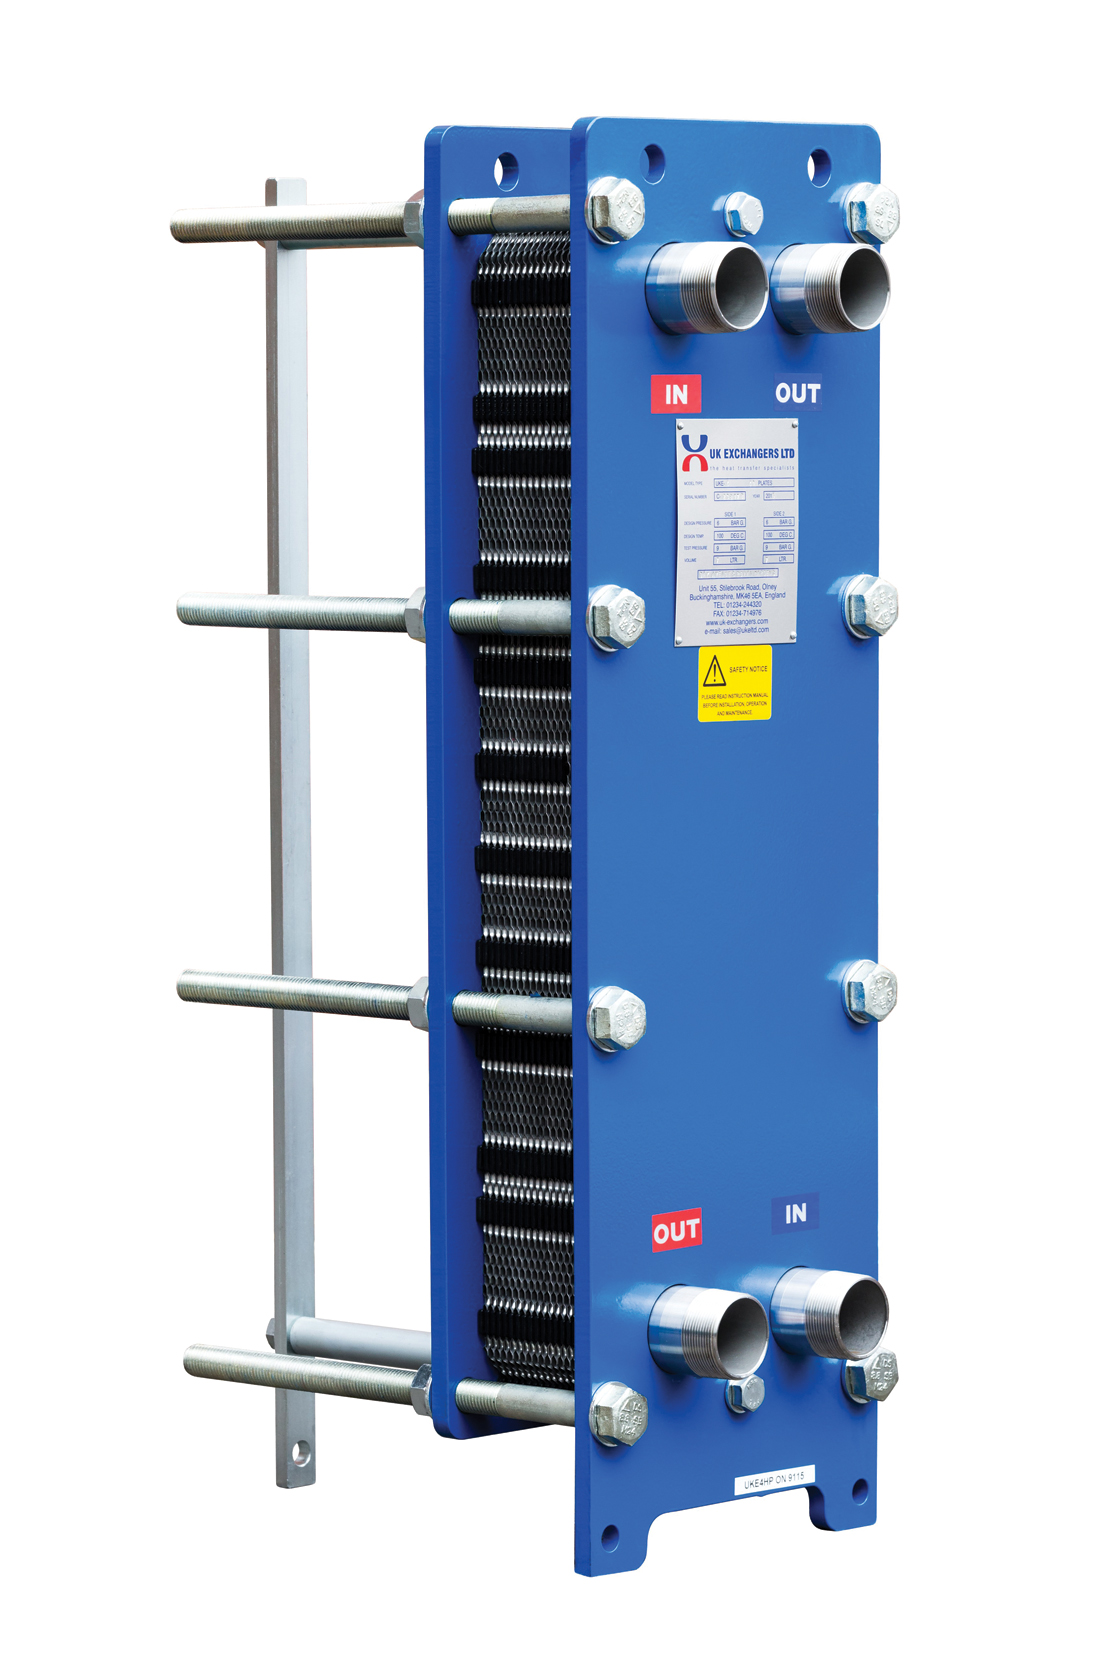 plate heat exchanger hook up Brazed plate heat exchangers comfort solutions installation and maintenance manual diversified heat transfer, inc • website: wwwdhtnetcom • 1-800-221-1522.